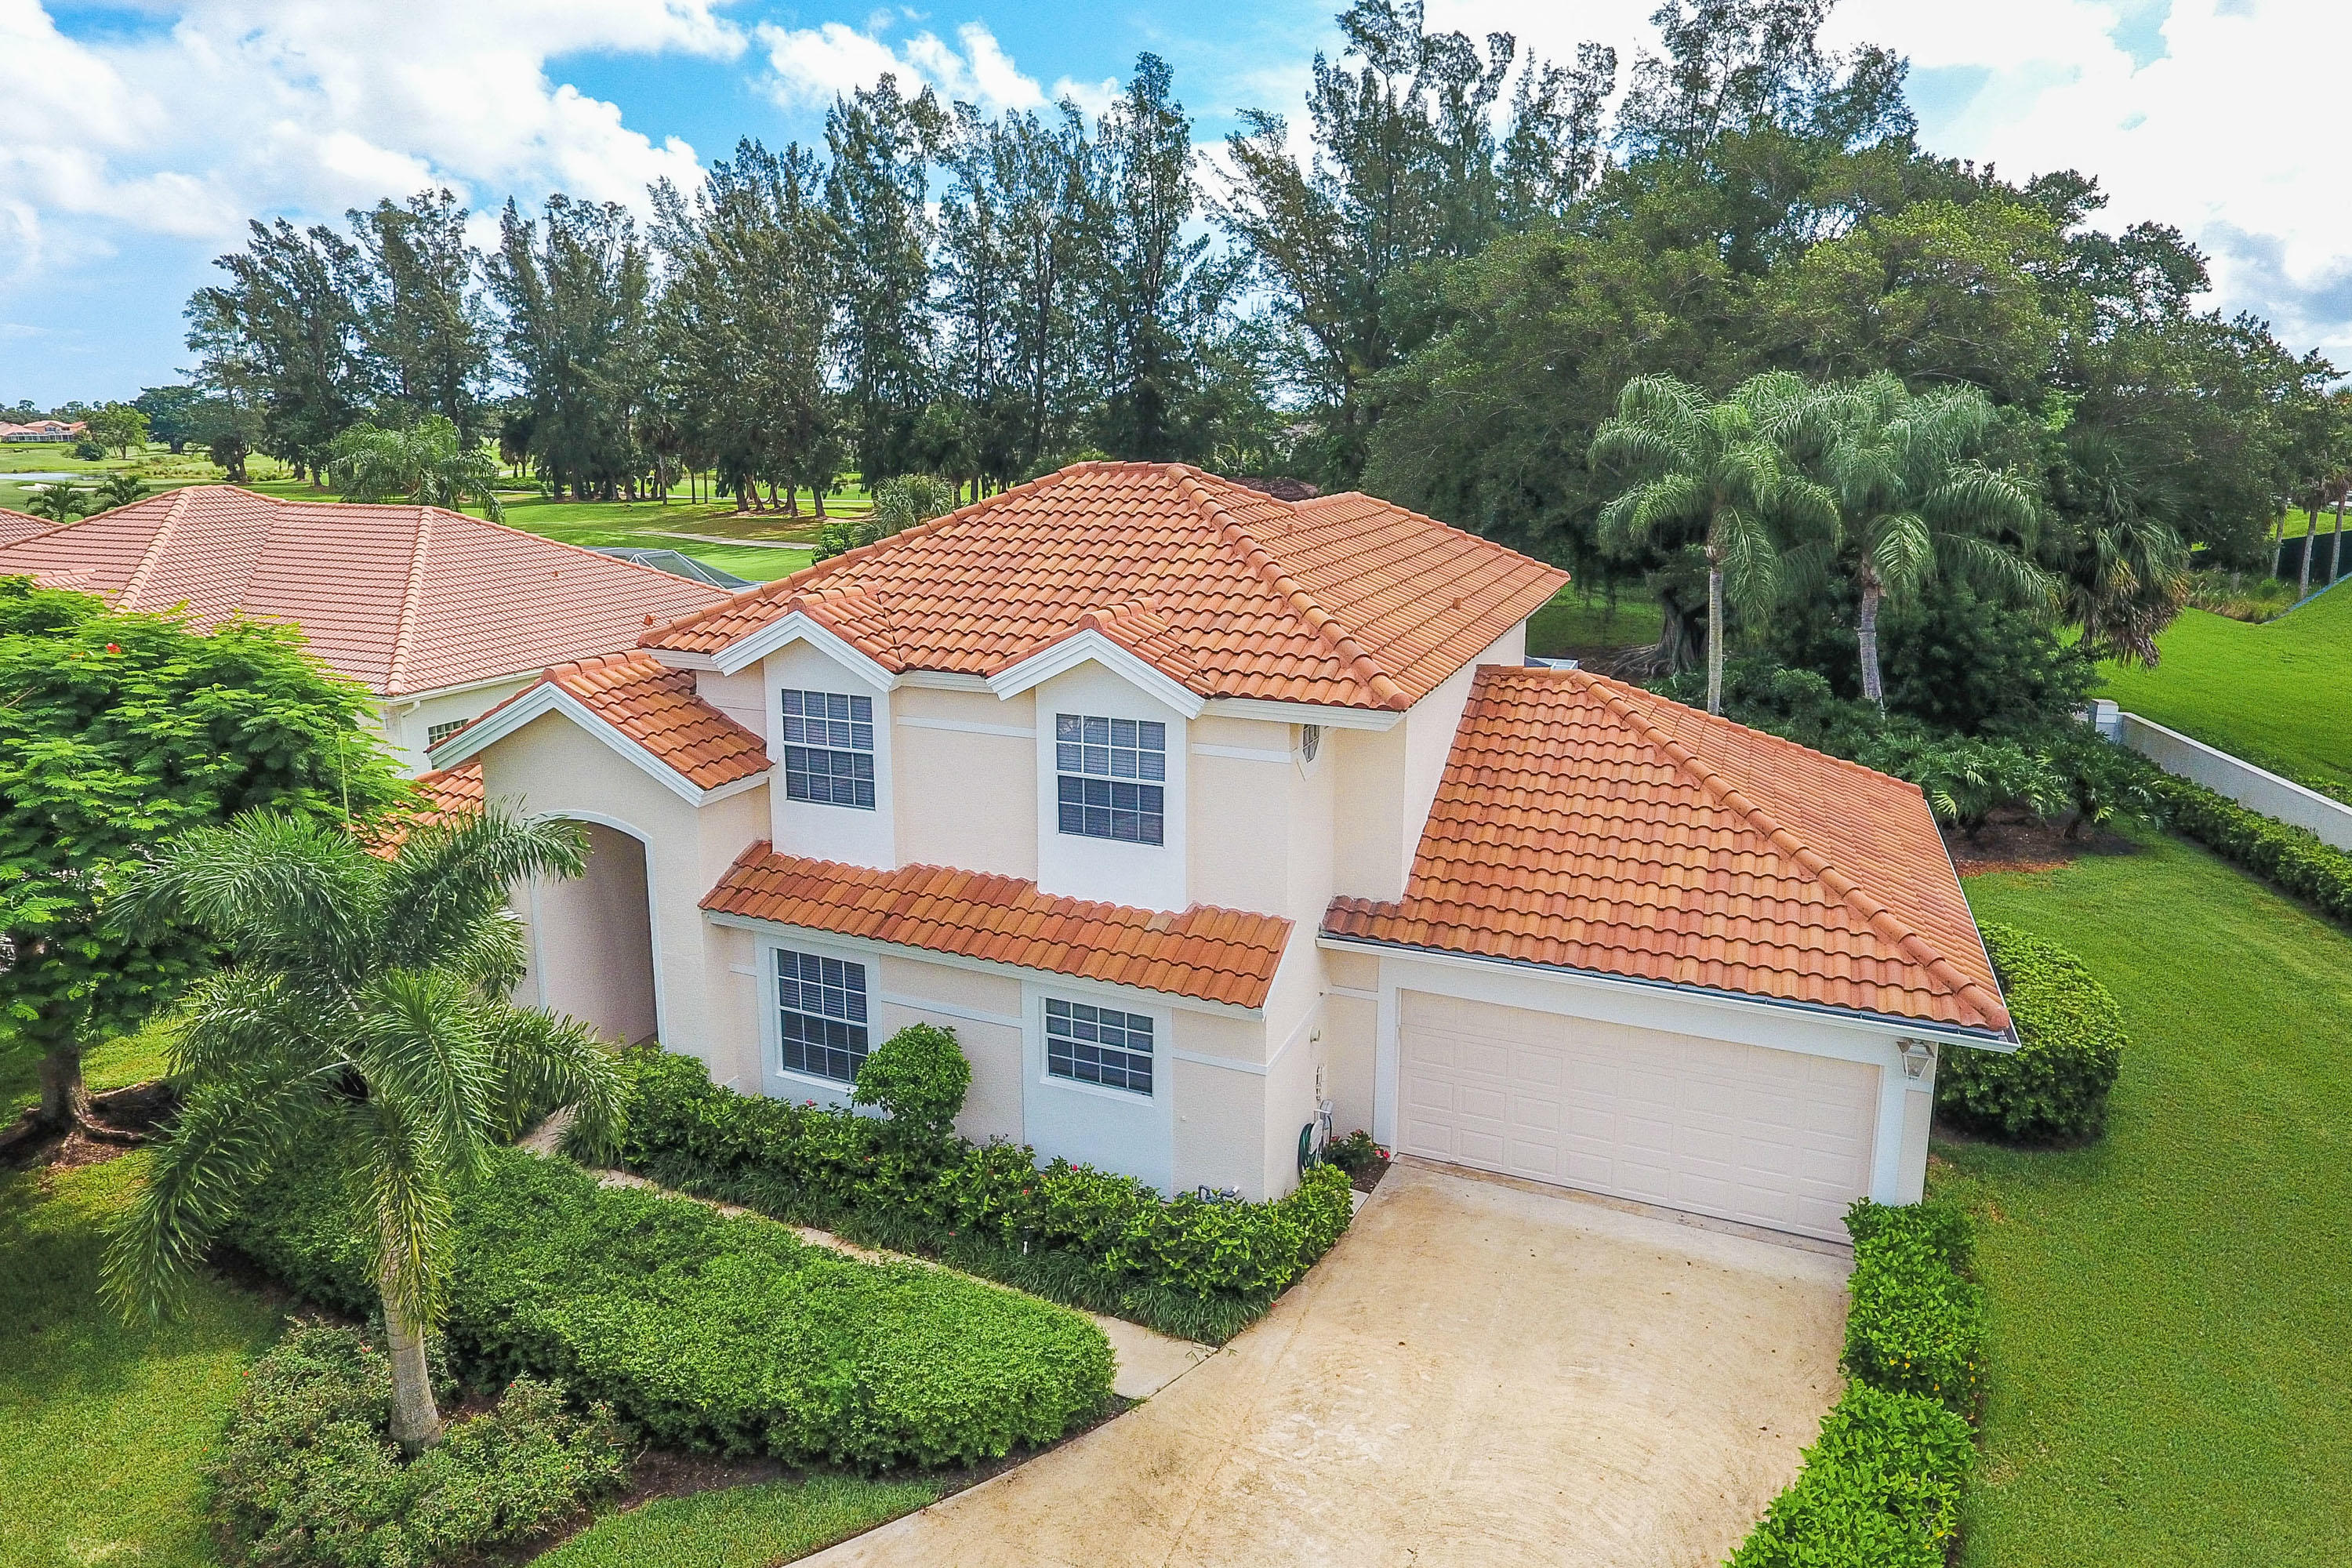 222 Eagleton Estates Boulevard, Palm Beach Gardens, Florida 33418, 3 Bedrooms Bedrooms, ,3.1 BathroomsBathrooms,A,Single family,Eagleton Estates,RX-10462099